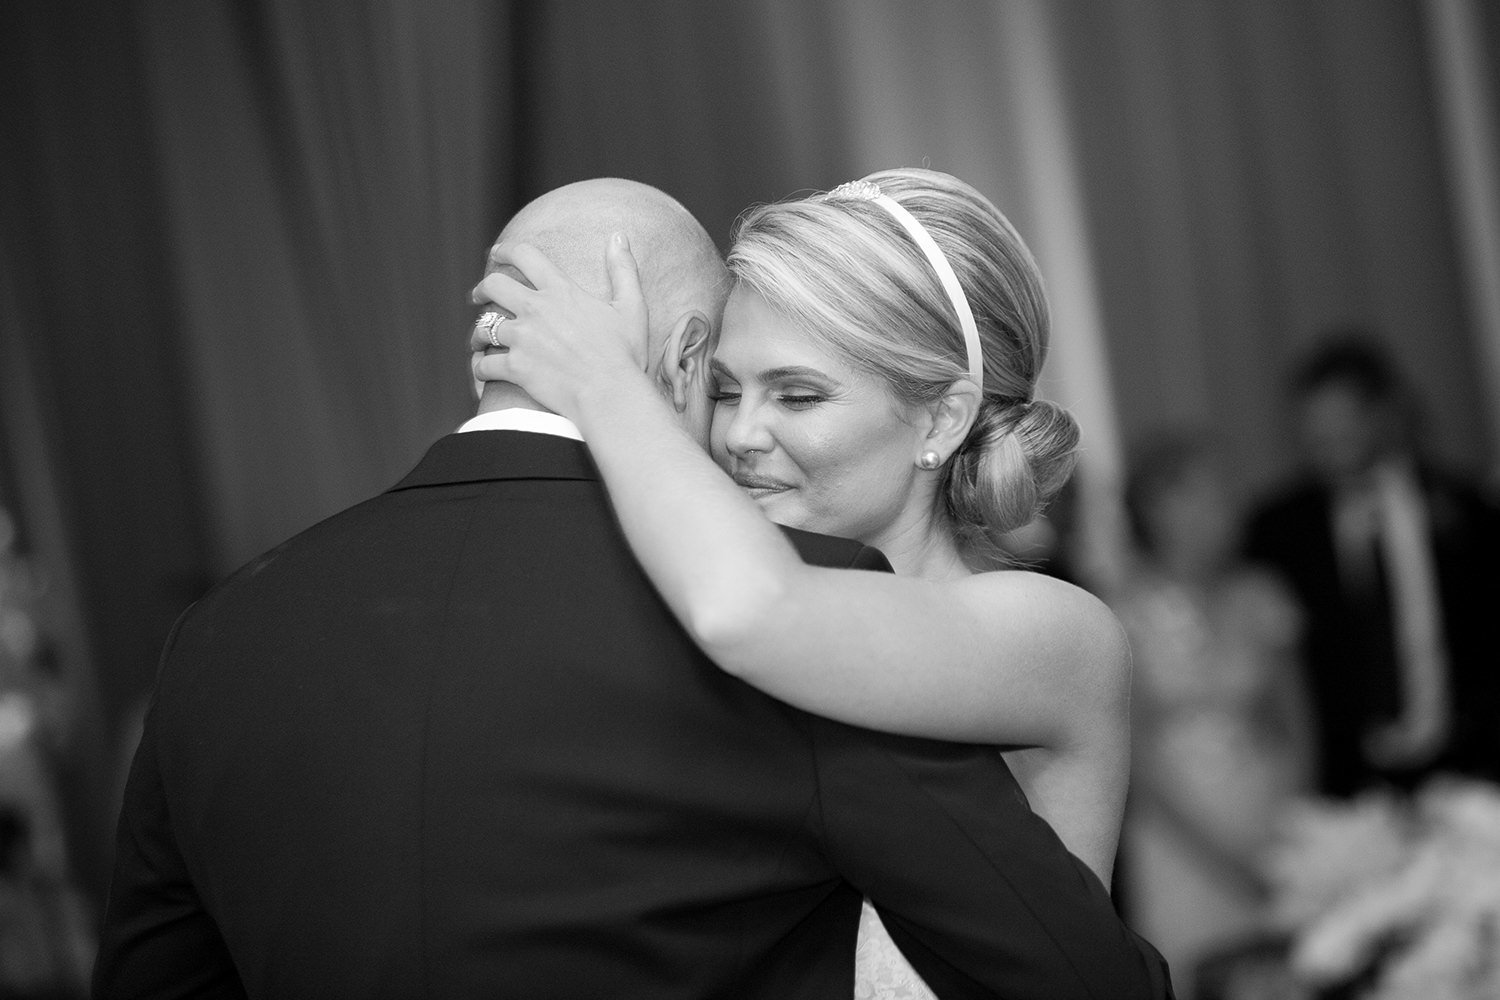 Emotional moment between the bride and her father during the father daughter dance